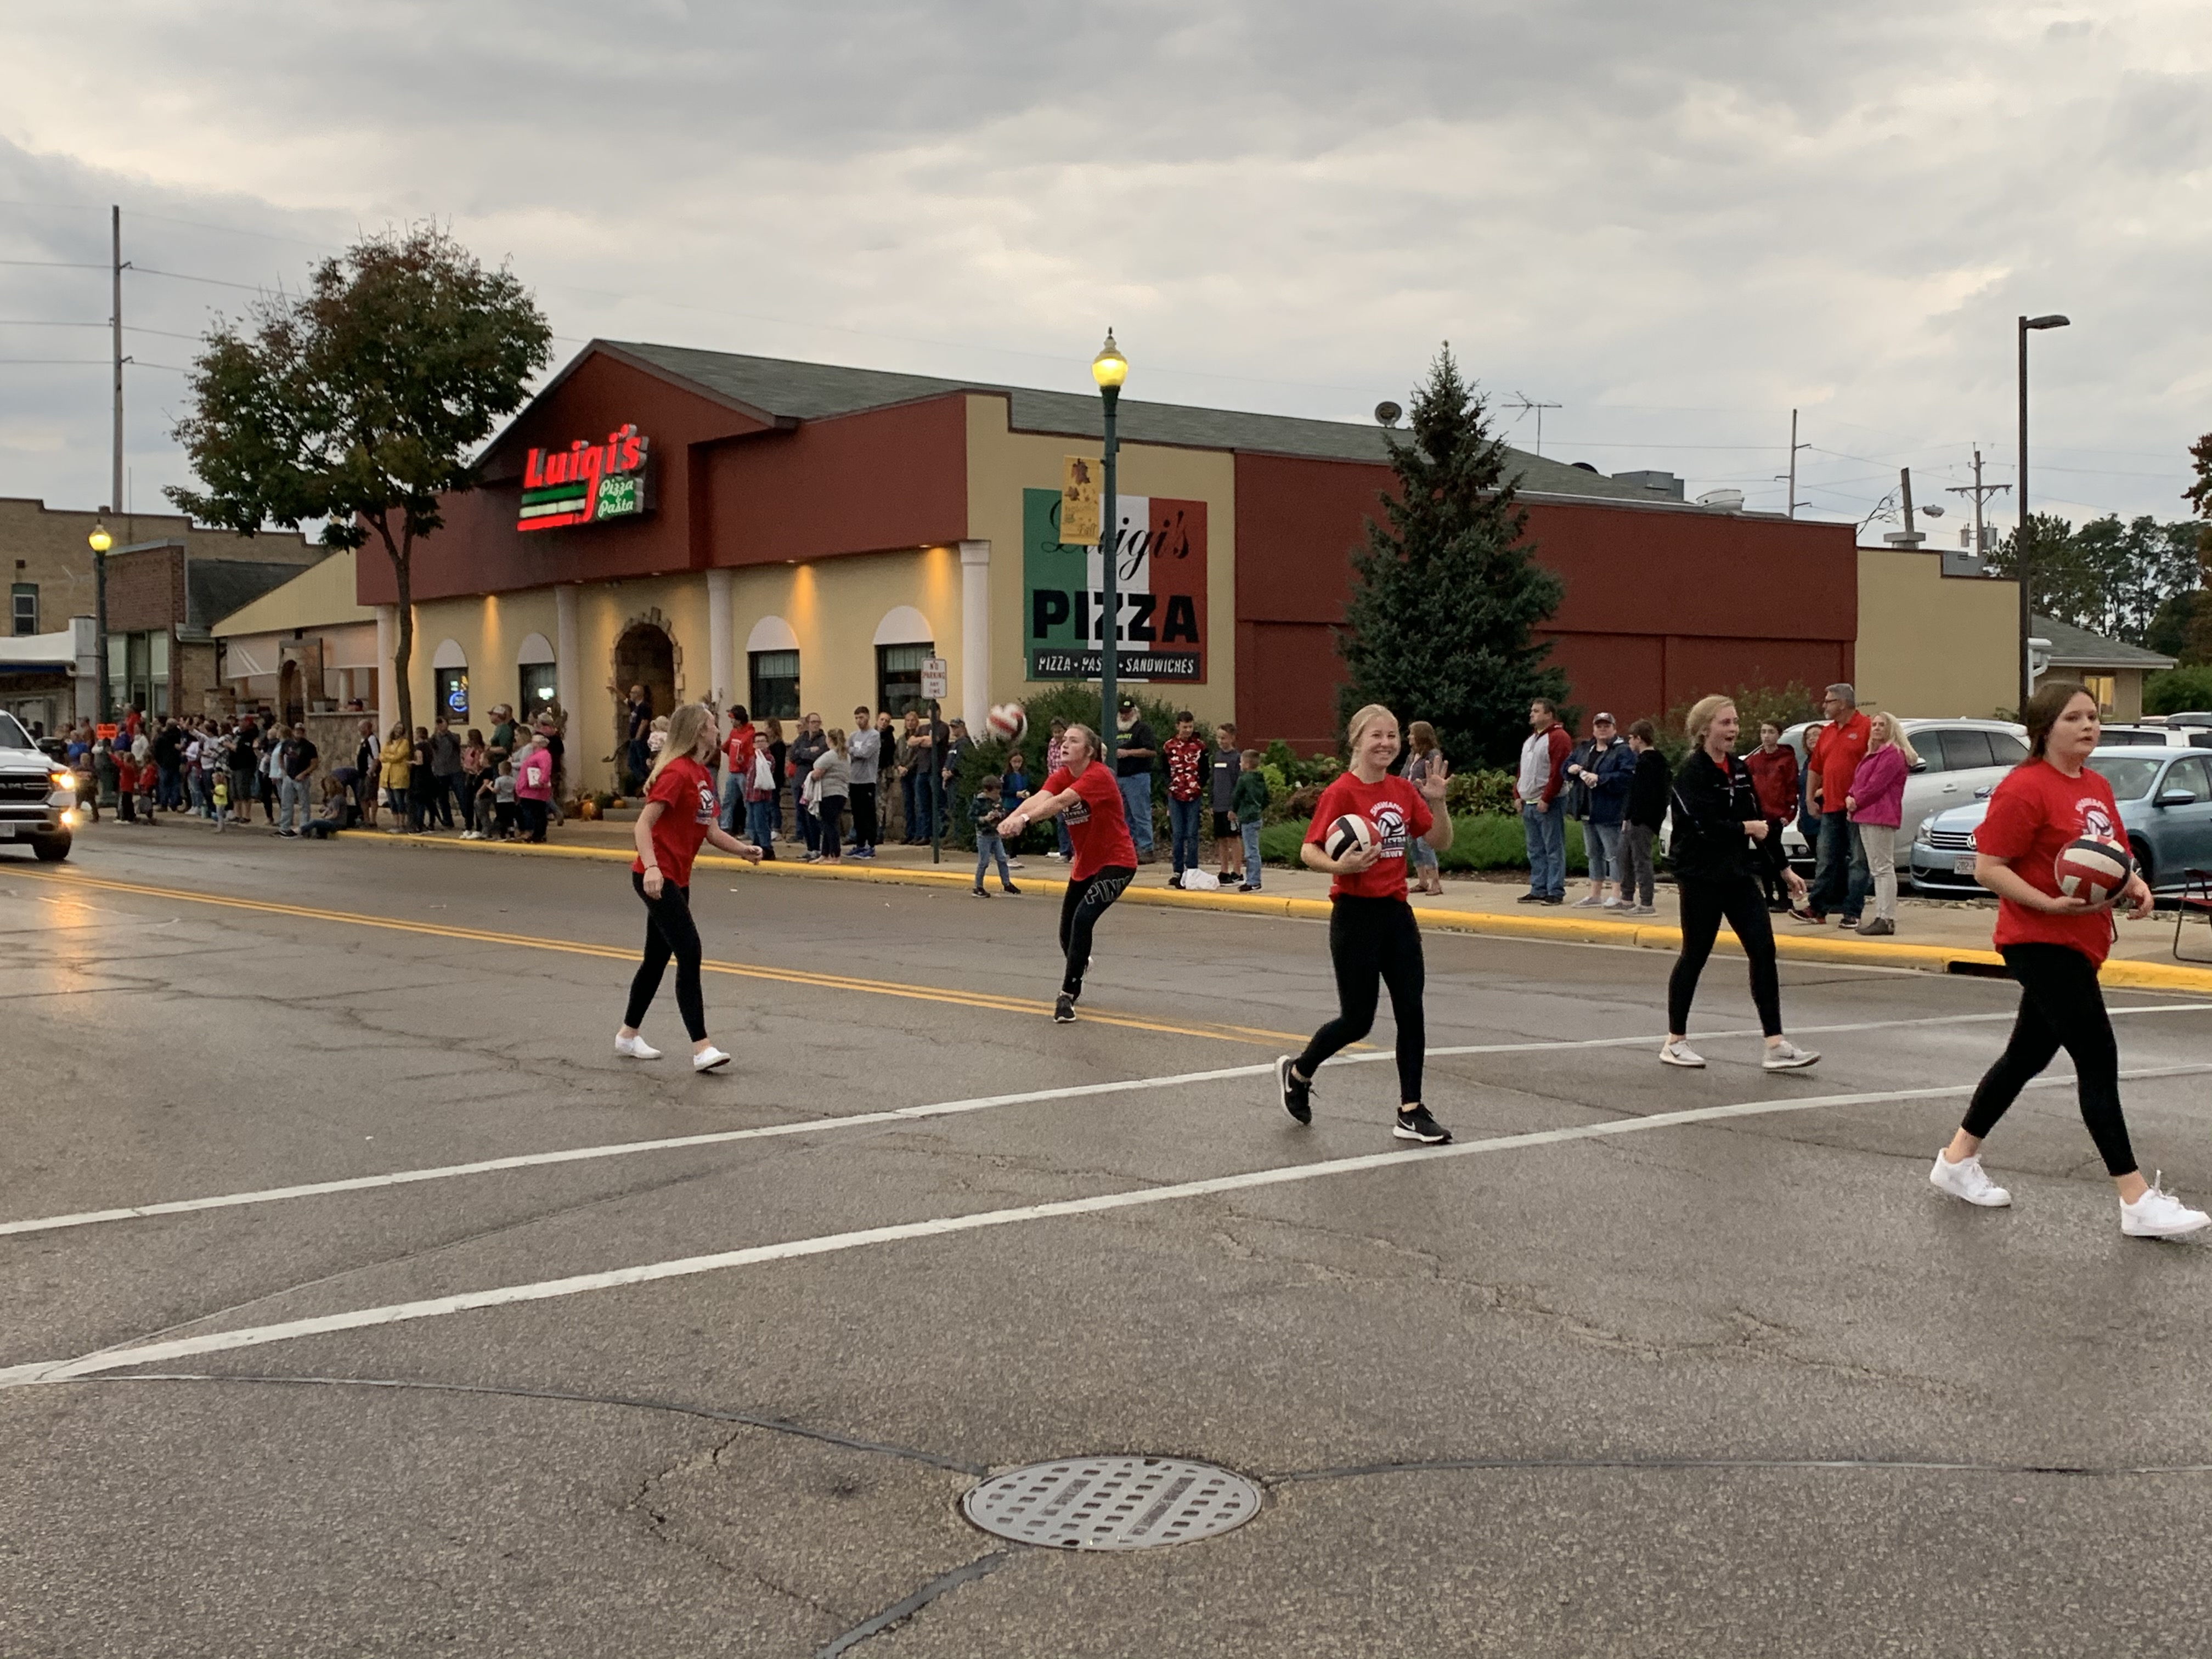 The Shawano volleyball team bumps, sets and spikes balls back and forth as they march down Main Street during the homecoming parade on Sept. 24.Luke Reimer   NEW Media